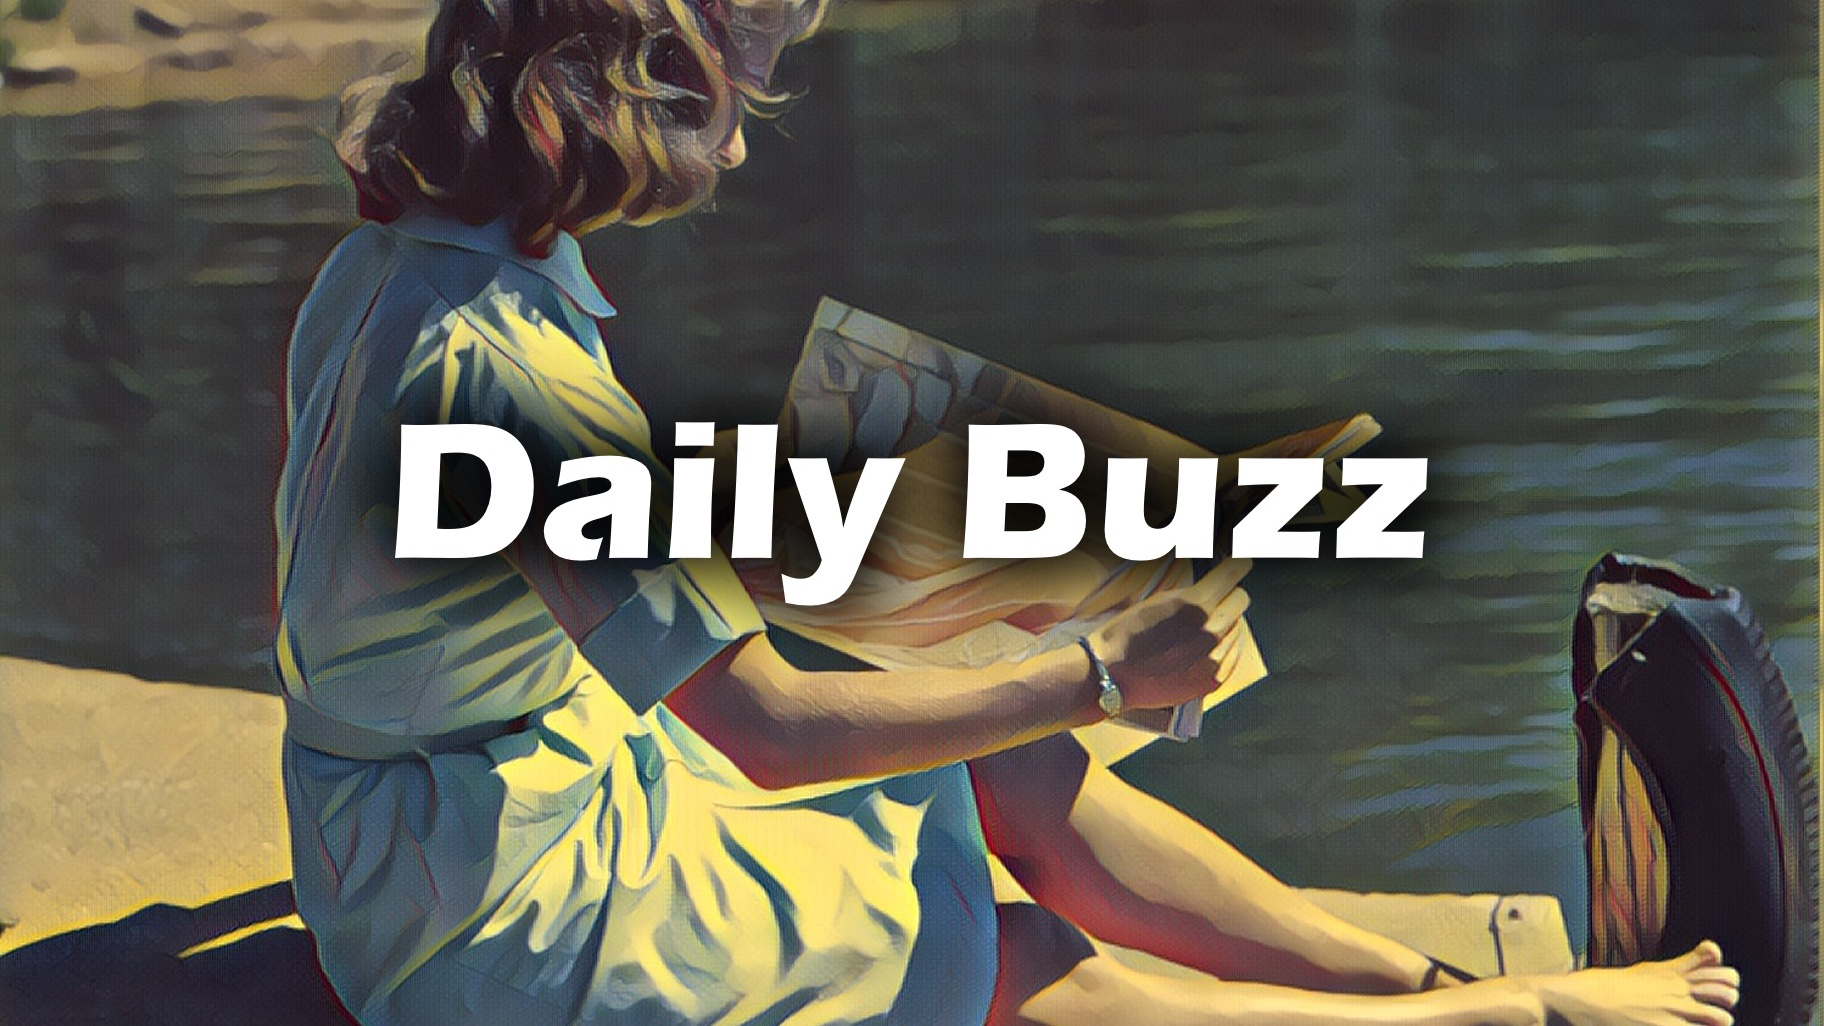 DailyBuzz Thursday 27 September 2018